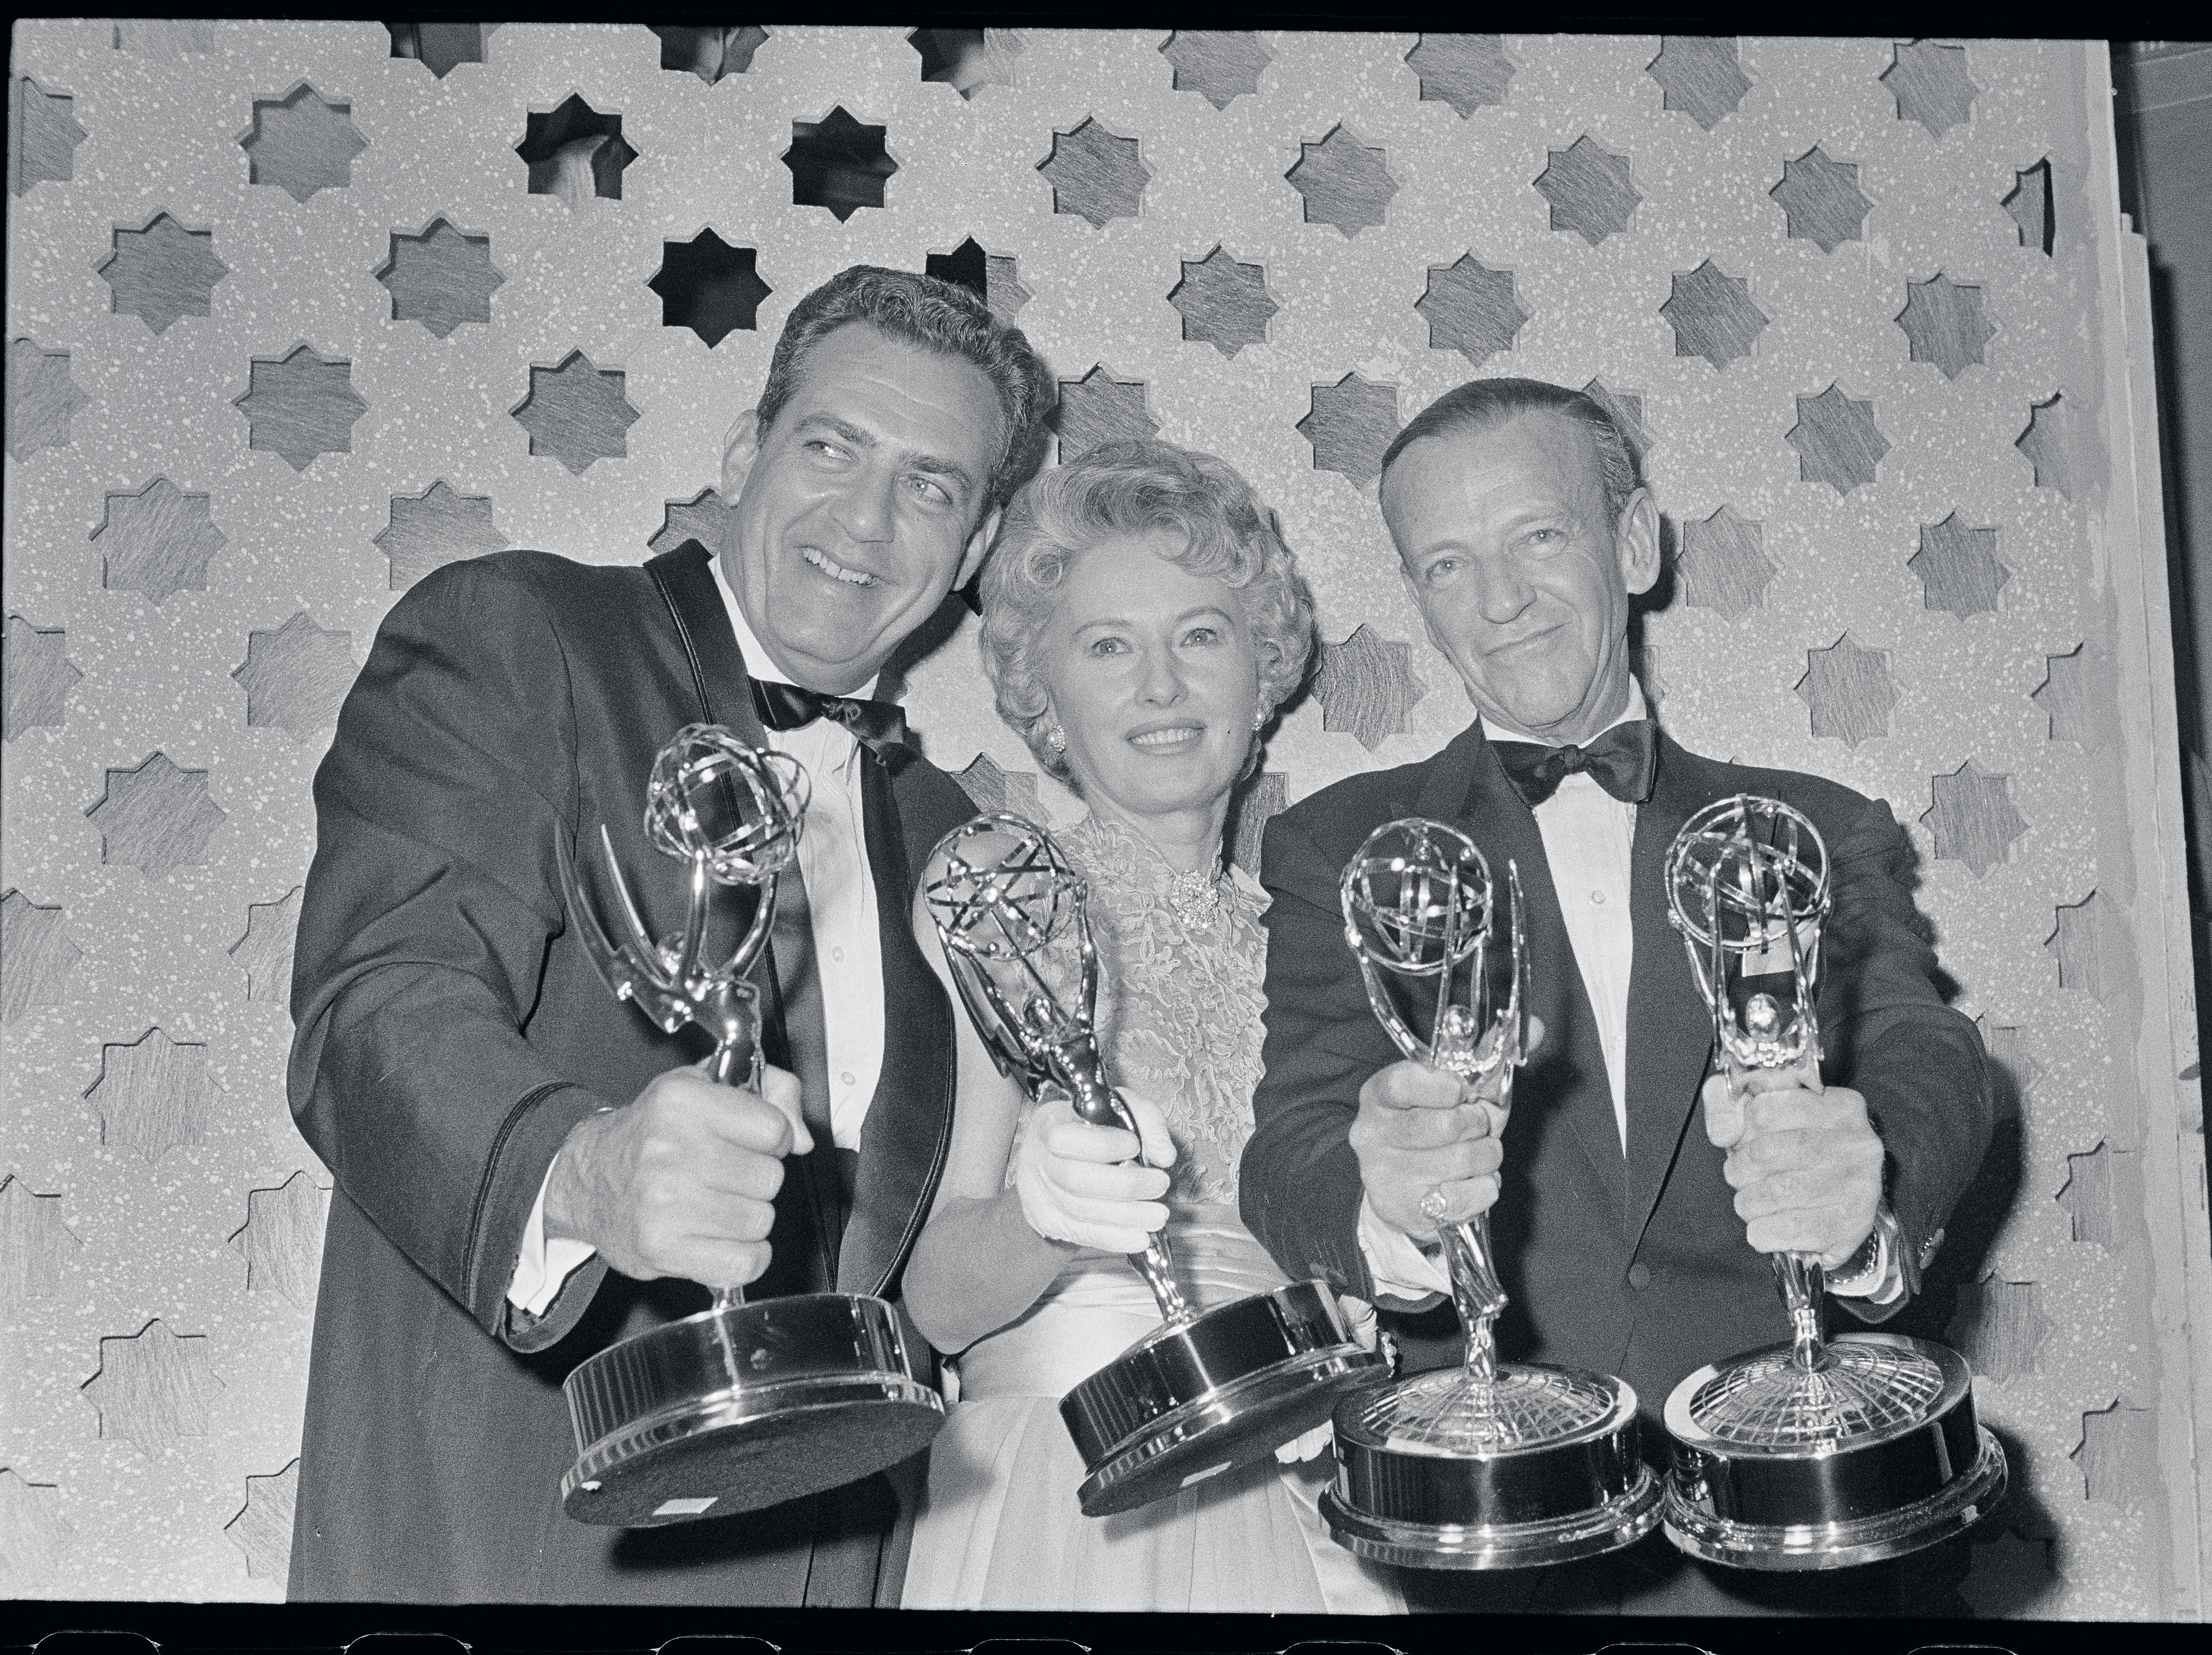 The three top Emmy winners pose proudly with their trophies. (Left and right) Raymond Burr, Barbara Stanwyck, and Fred Astaire were honored by the Academy of Television Arts and Sciences for outstanding television shows.